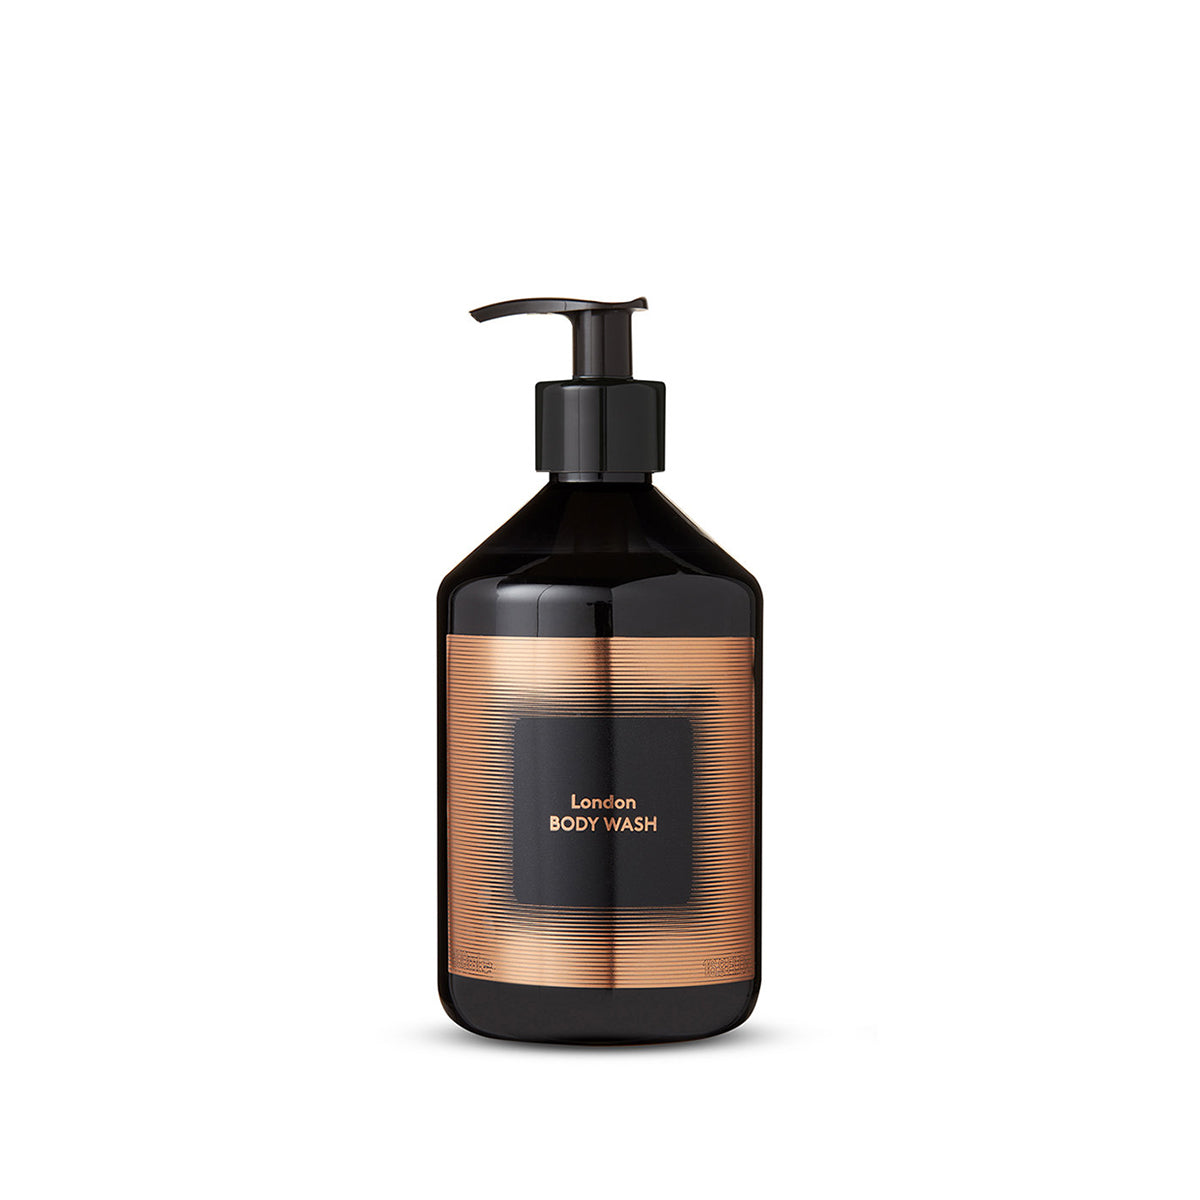 Eclectic London Body Wash 500ml